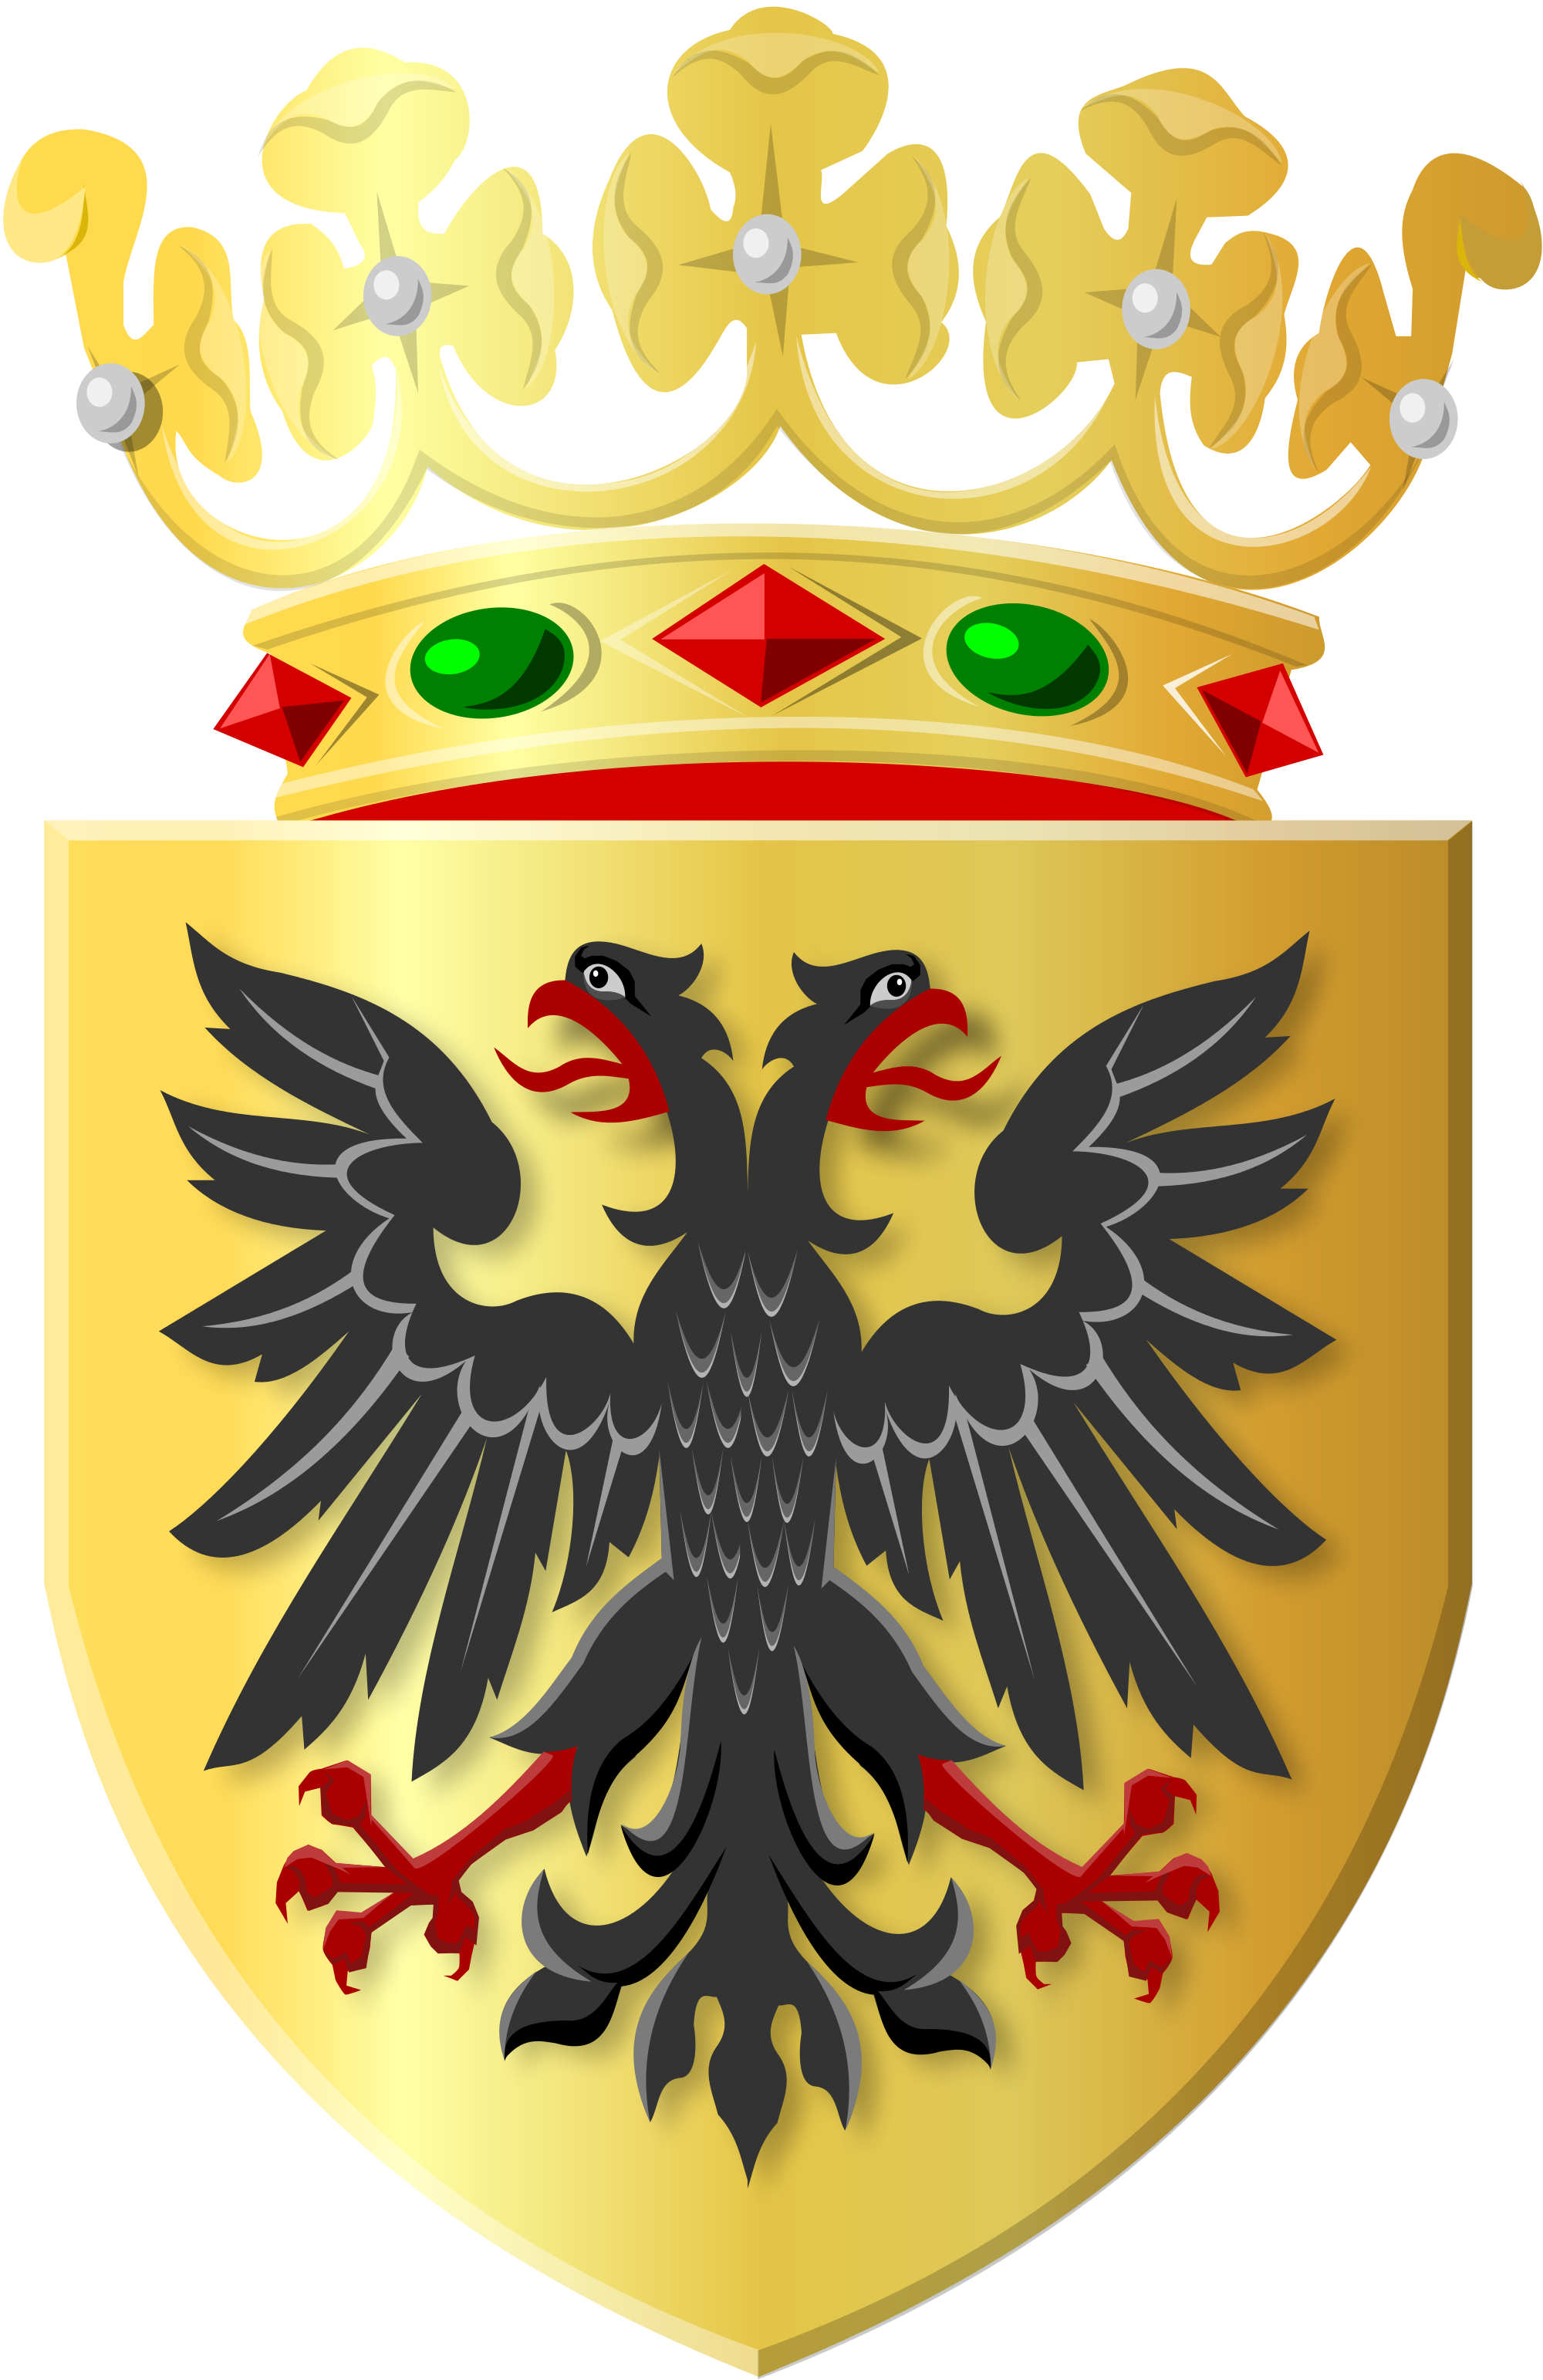 Black crown with shield clipart png freeuse library File:Golden shield with black eagle and golden crown.svg - Wikimedia ... png freeuse library